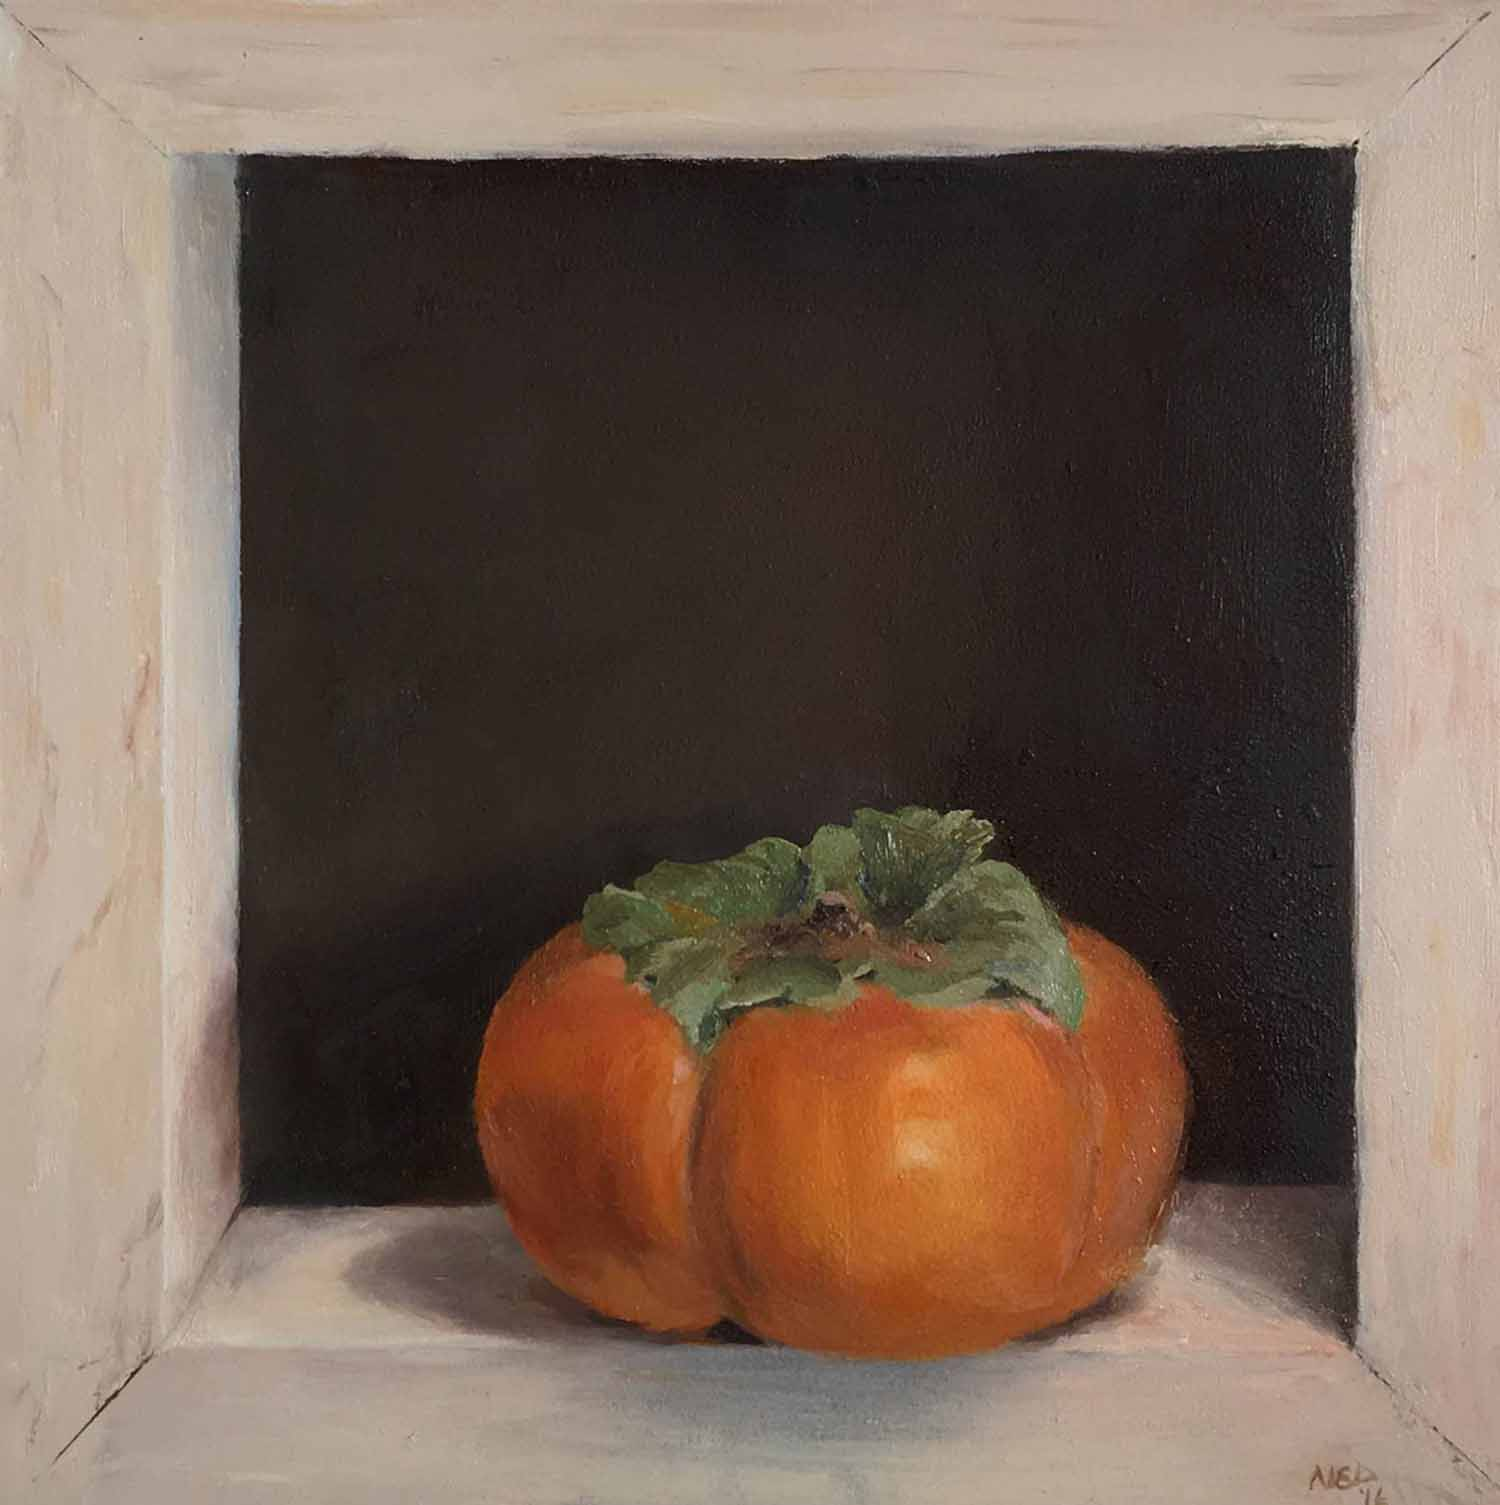 The Second Persimmon